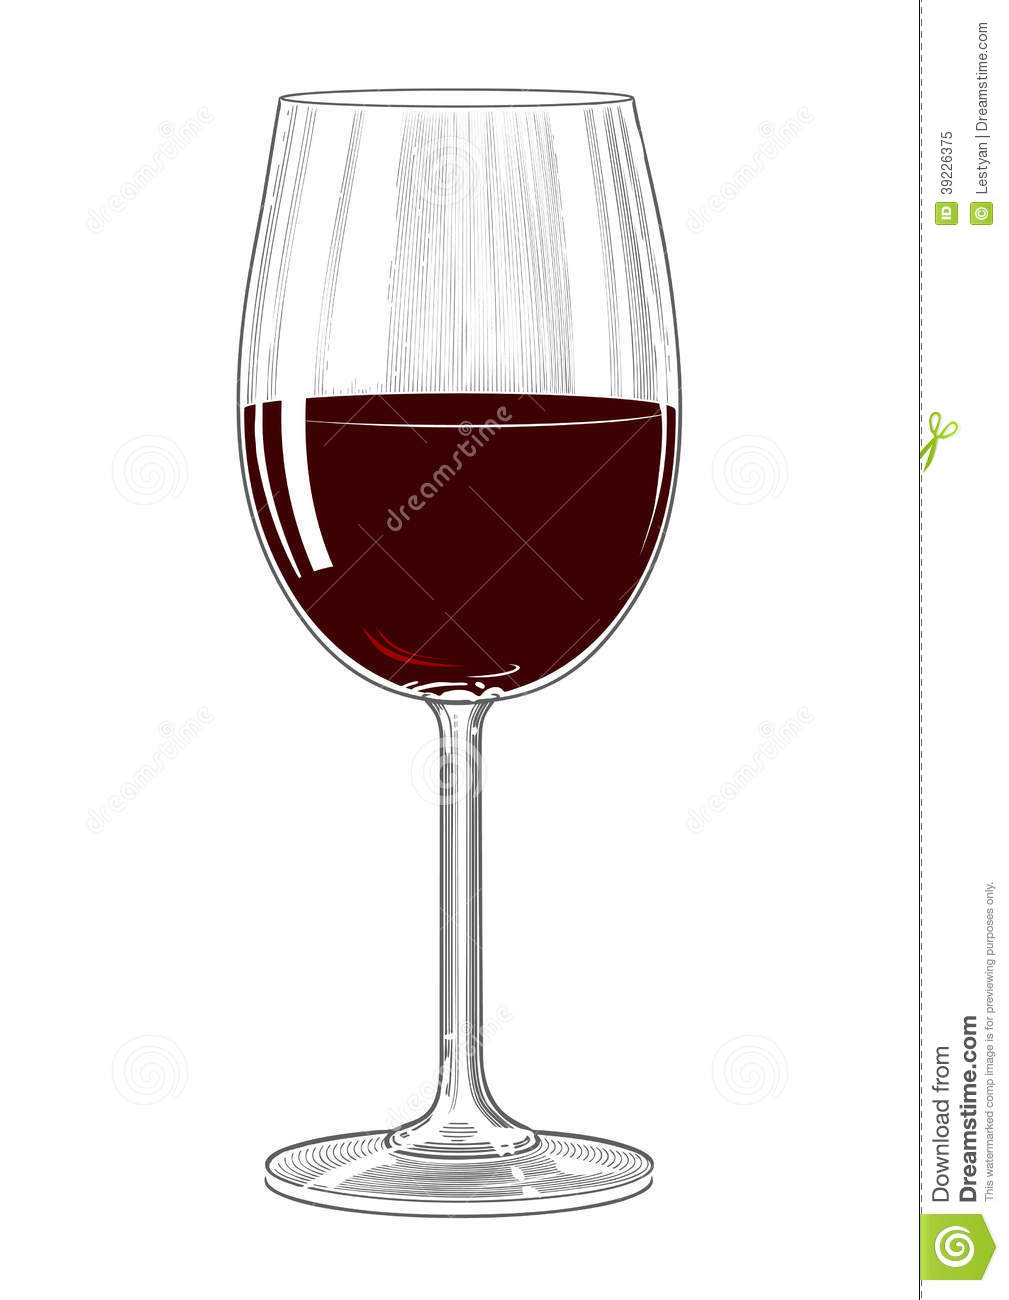 Red Wine Glass In Vintage Engraving Style Stock Vector ...